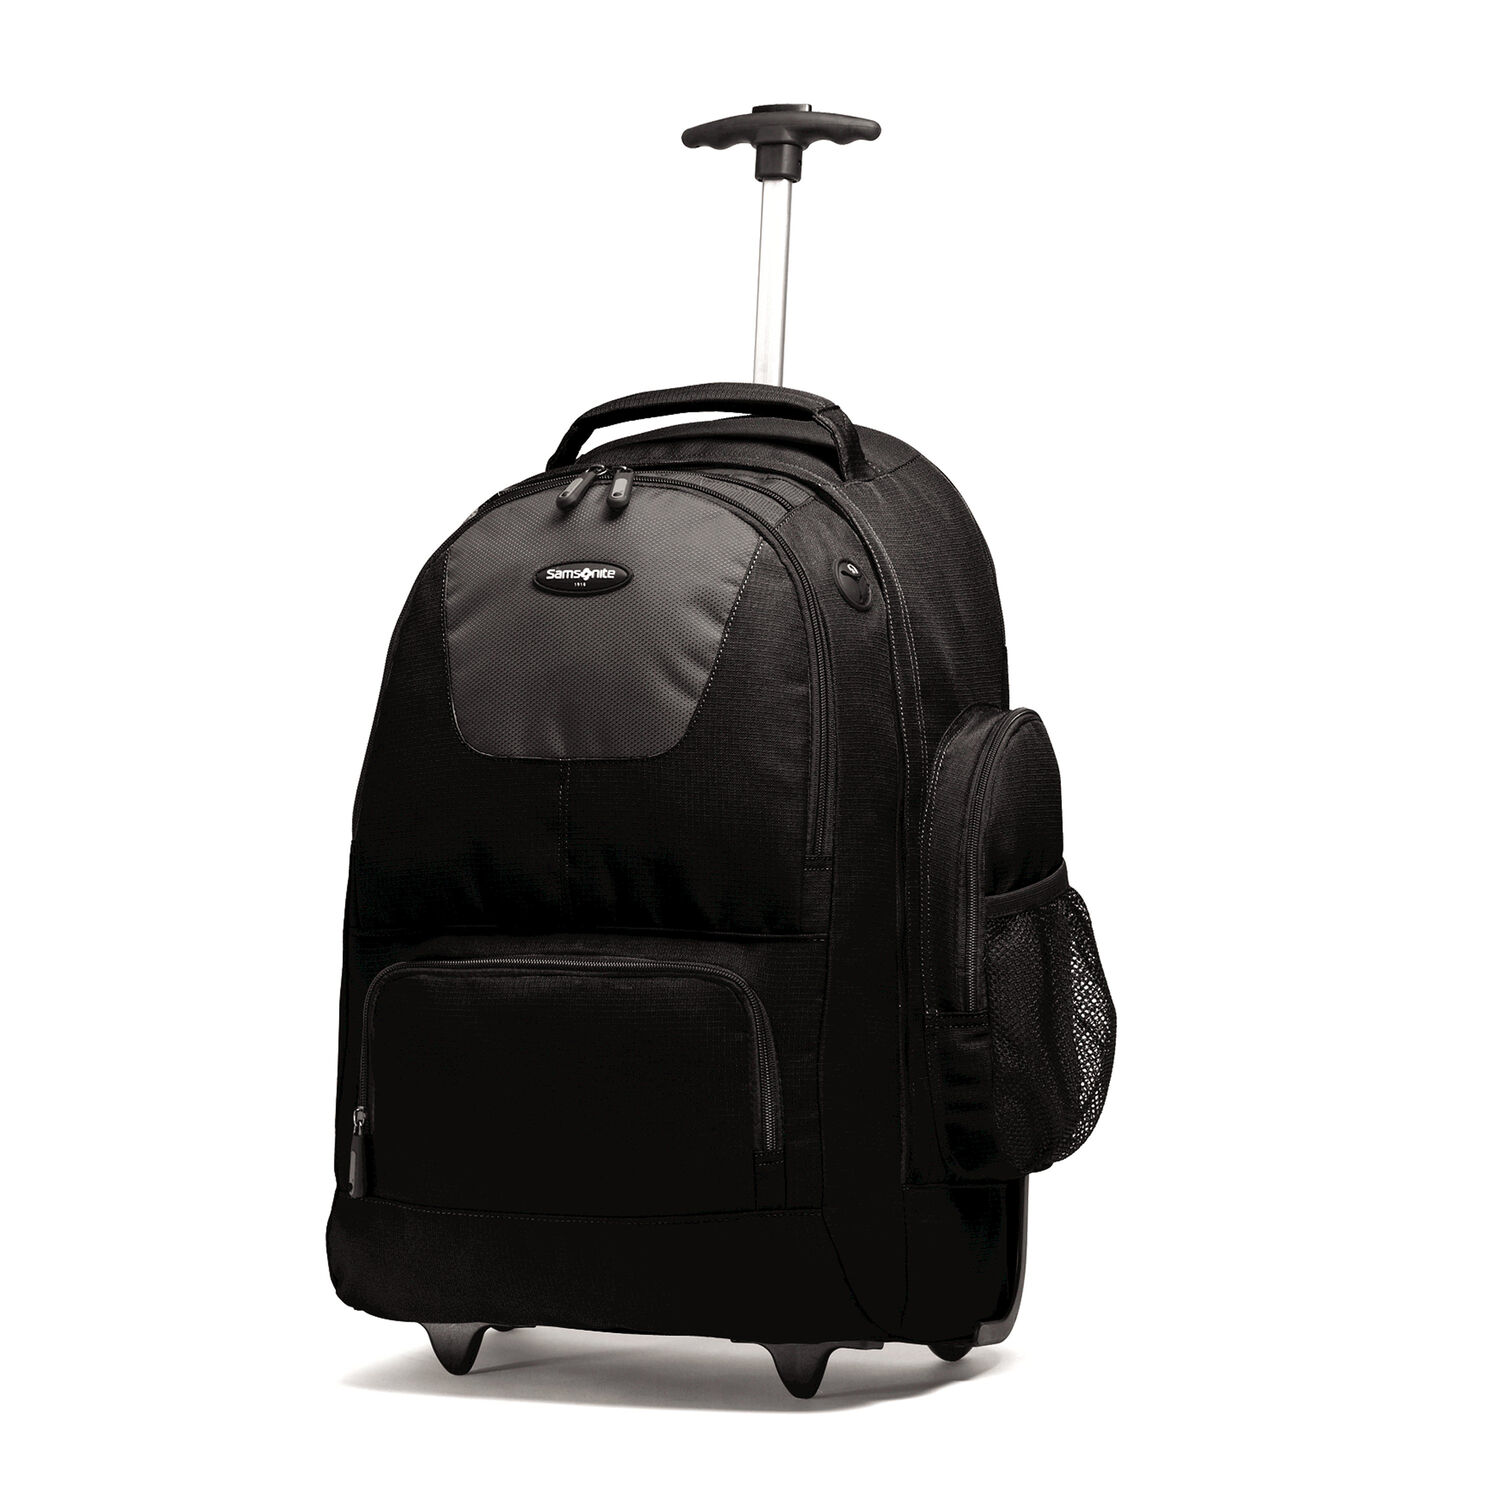 School bag with wheels singapore - Samsonite Wheeled Computer Backpack In The Color Charcoal Black